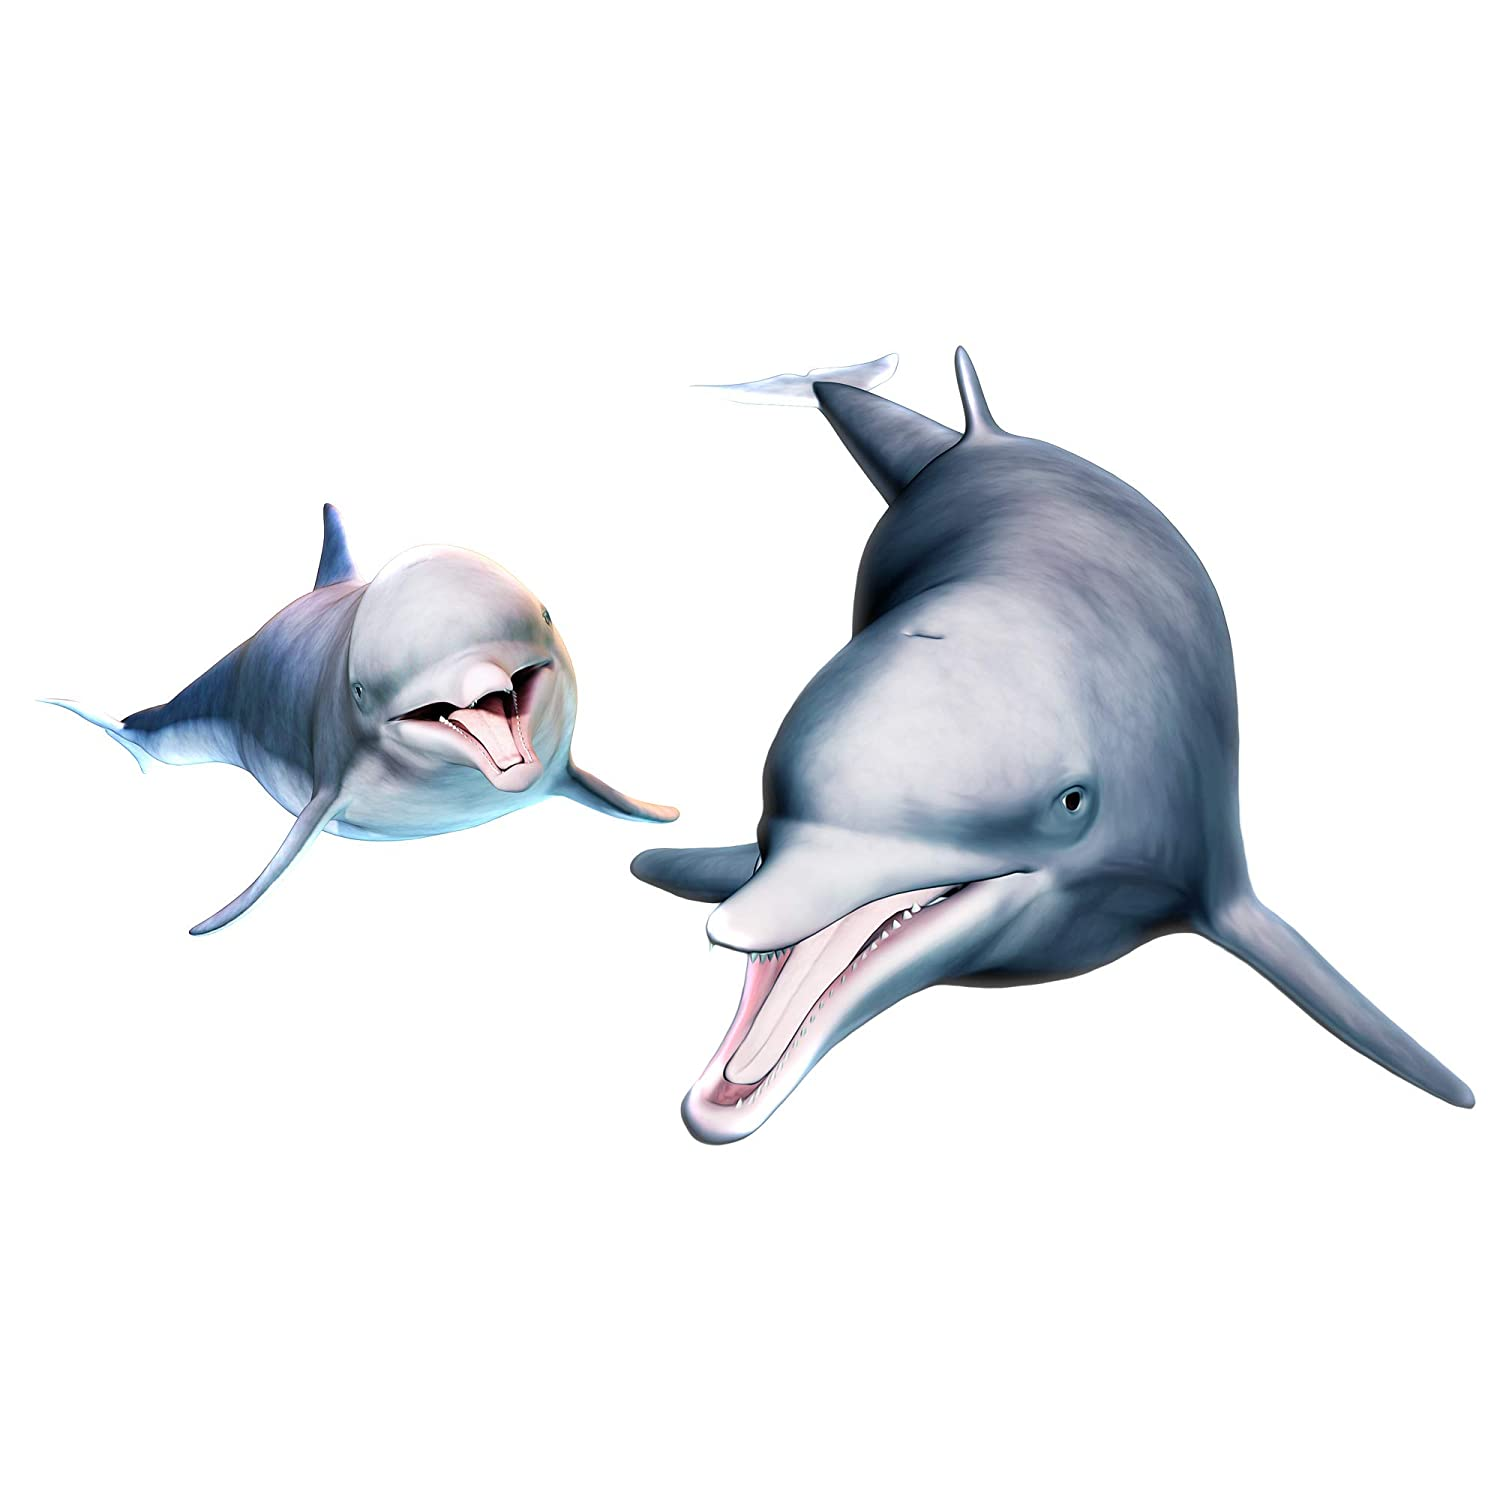 RW-1082 3D Dolphin Wall Sticker DIY Removable Peel and Stick Wall Decals Wallpaper Decorative Wall Sticker for Kids Babys Bedroom Bathroom Living Room Nursery Wall Decoration